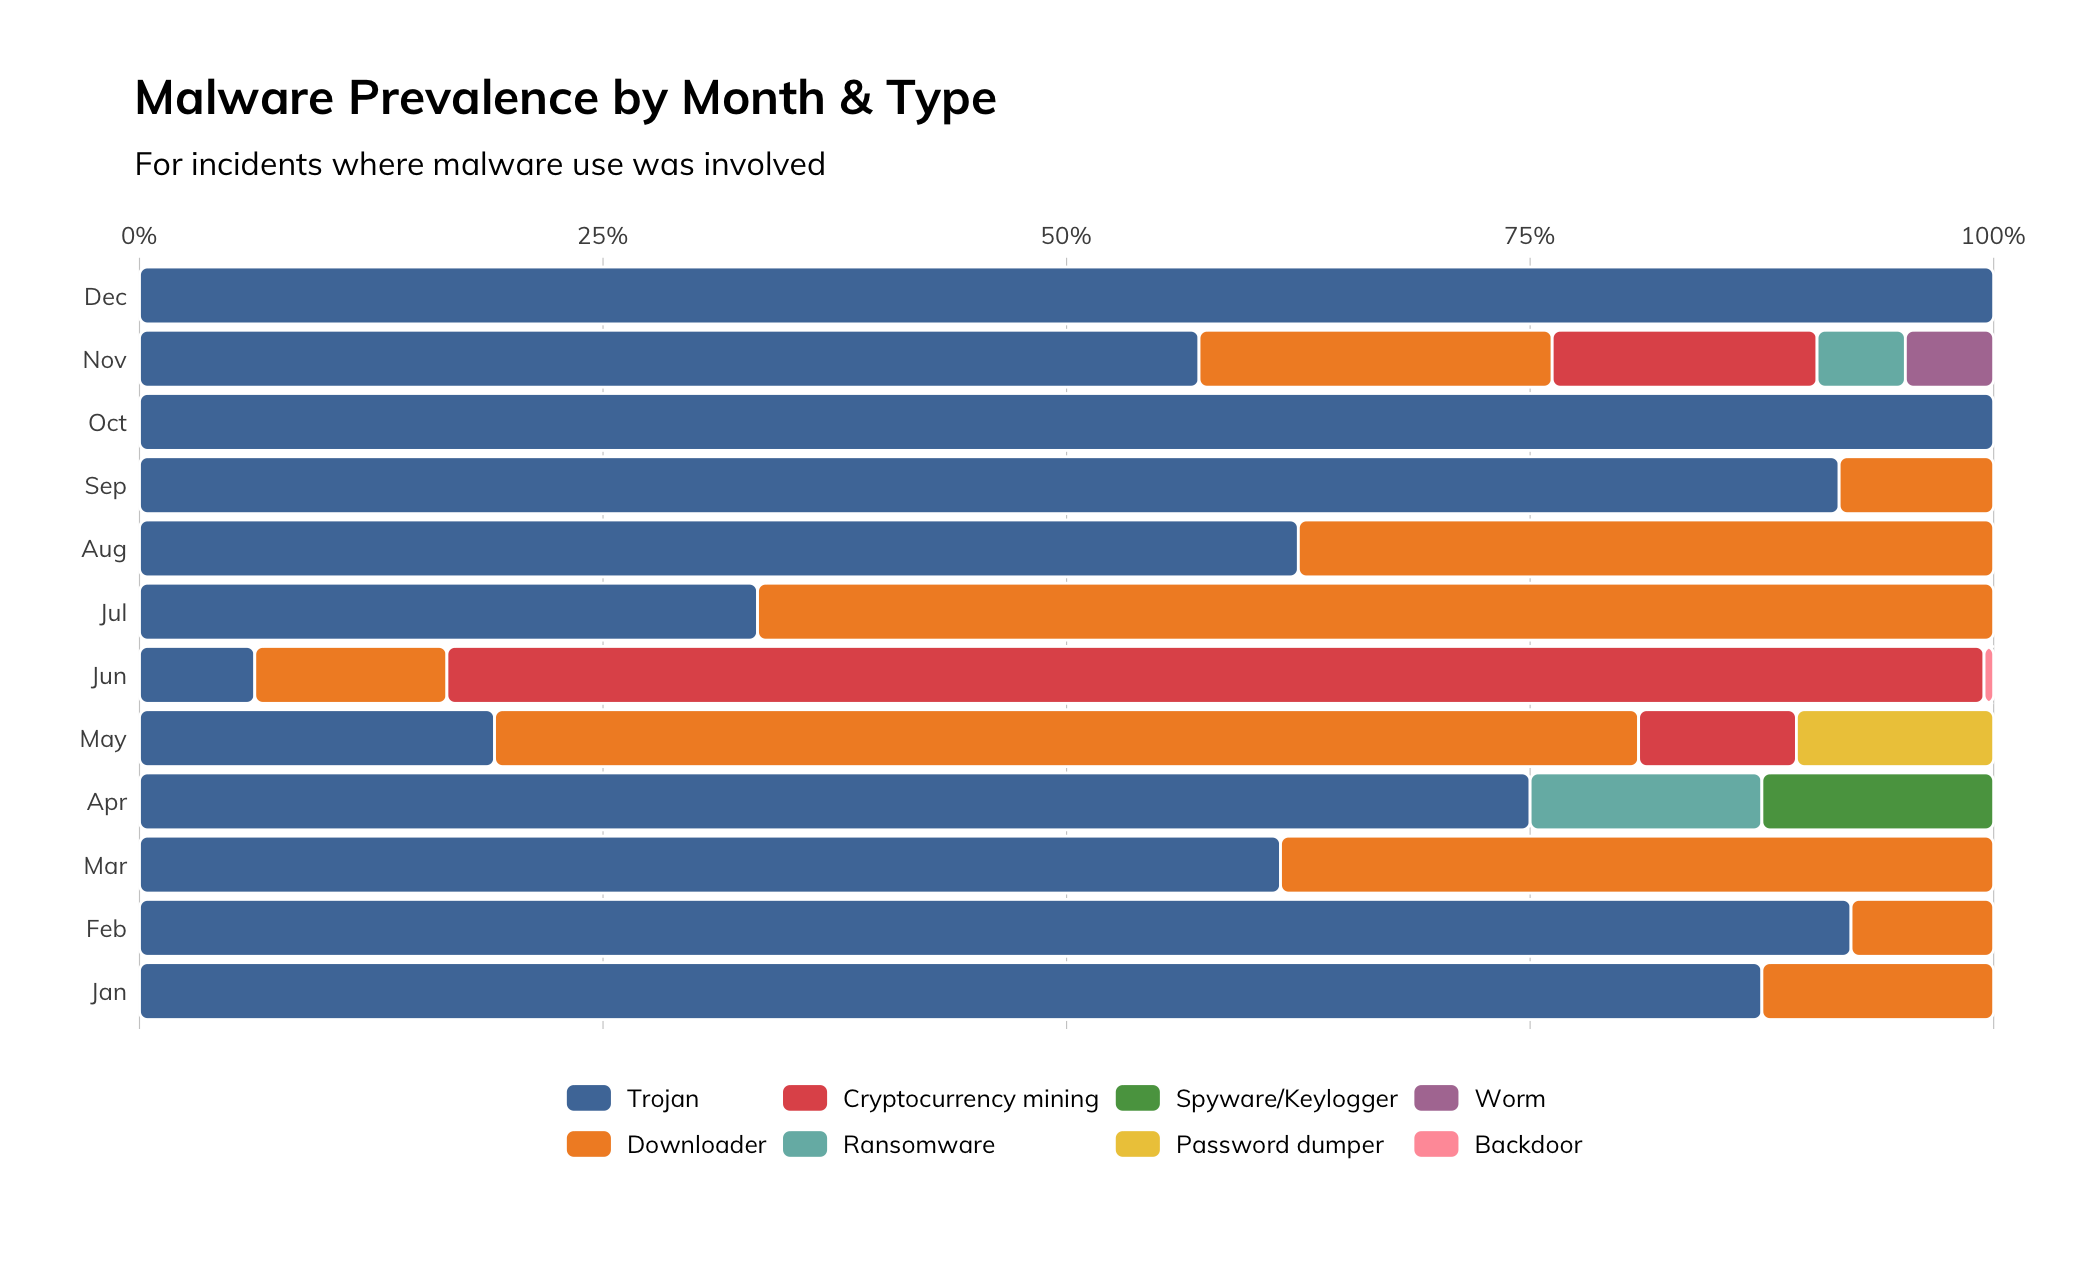 Figure 16: Malware Prevalence by Month and Type